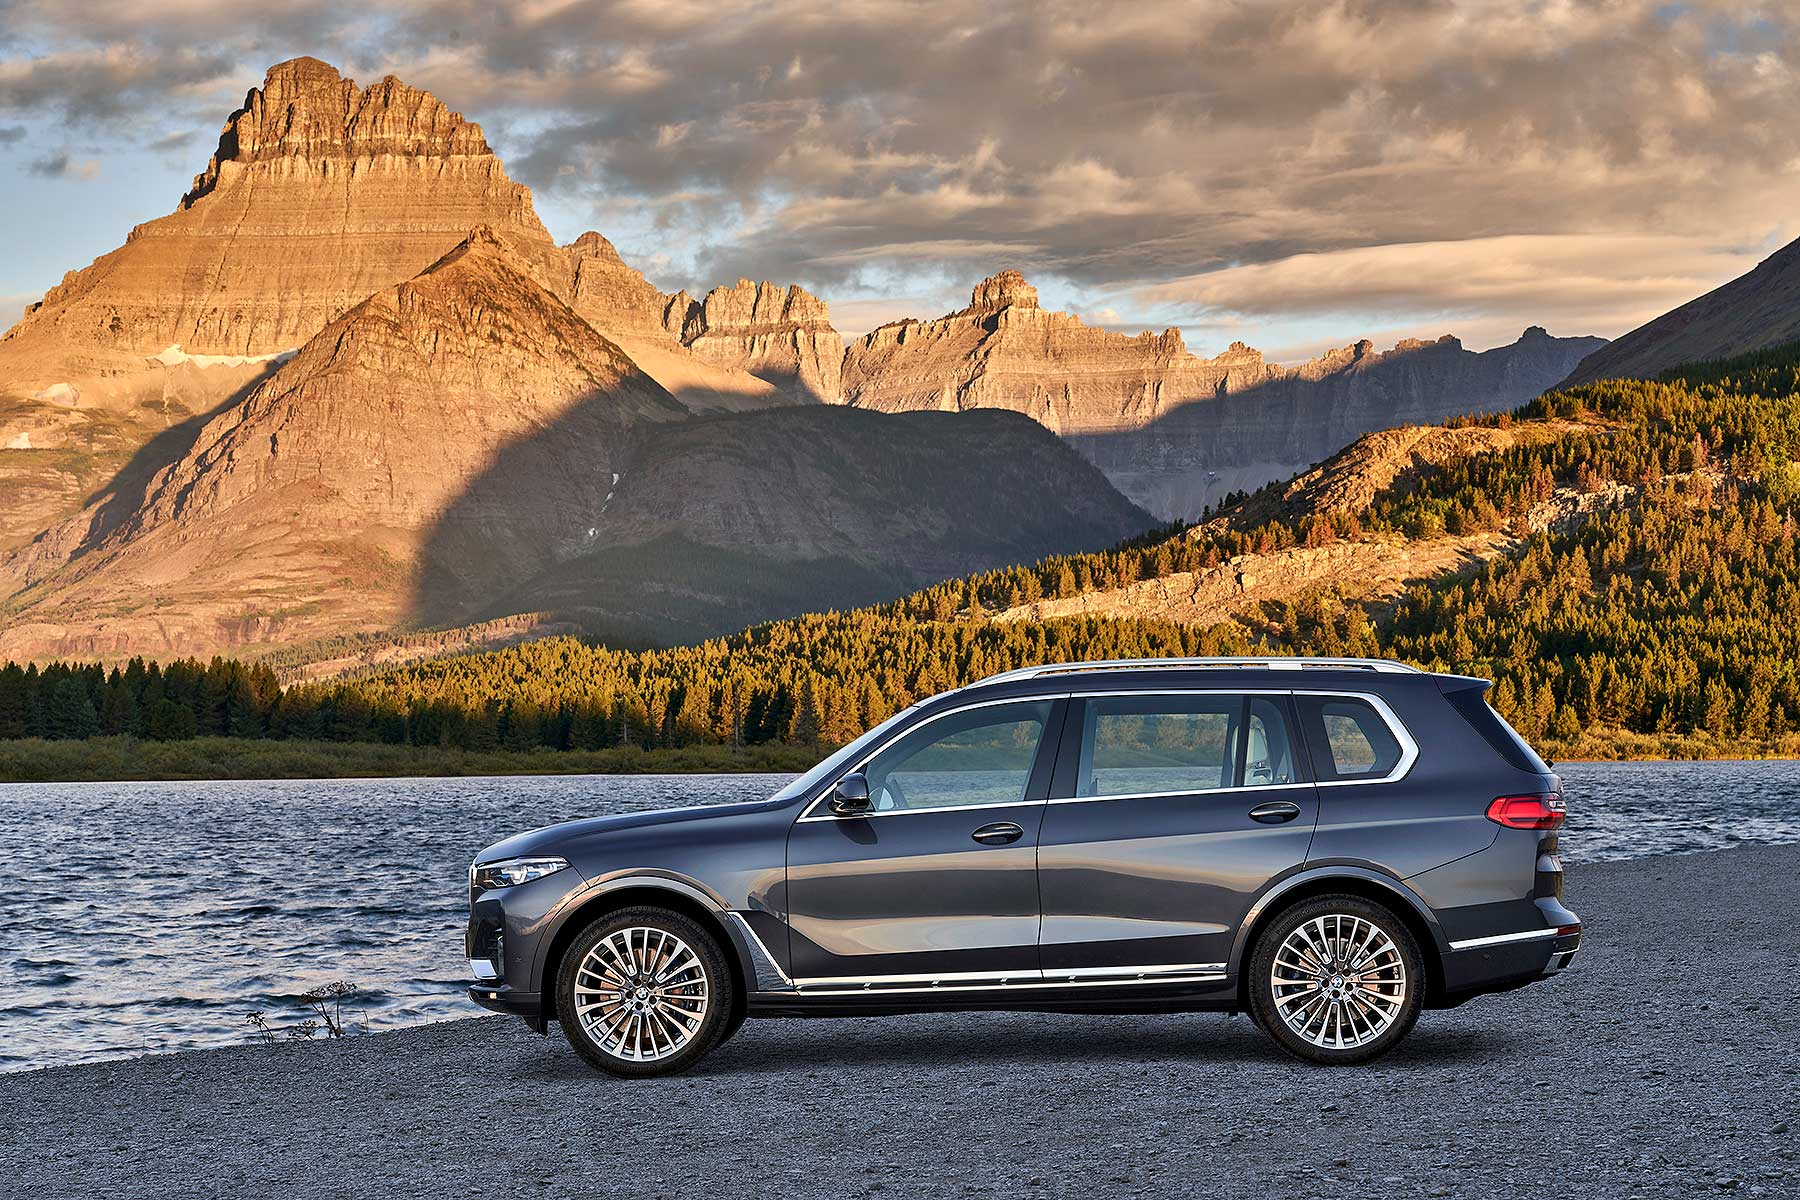 Third Row Suv >> Bold new 2019 BMW X7 range-topping SUV revealed | Motoring Research